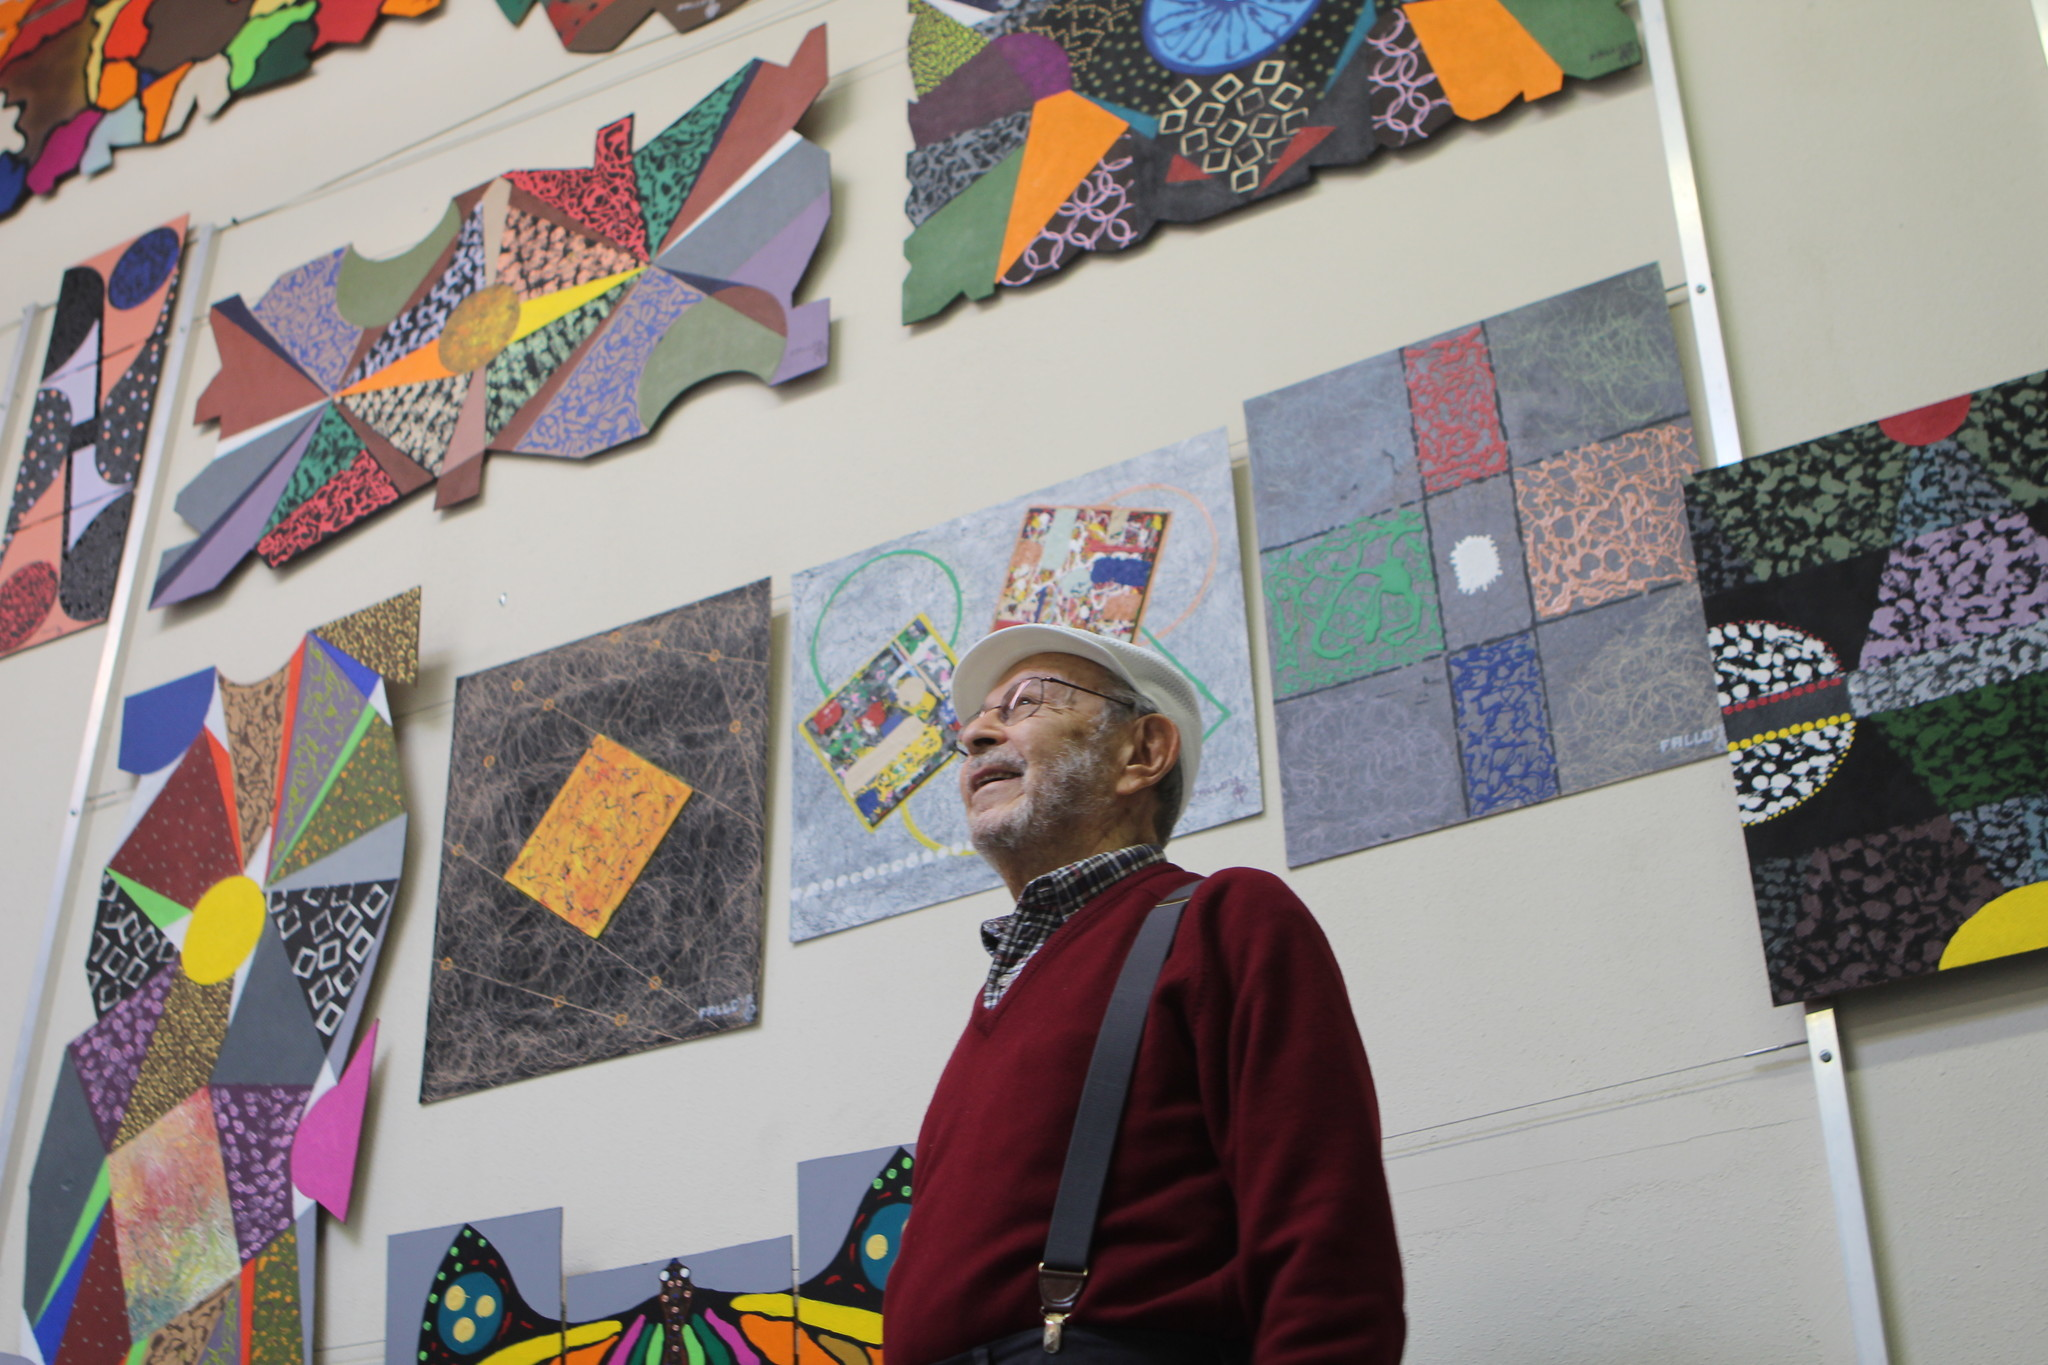 Mareyna, in his Miramar art studio, smiles as he narrates a tour of his old and new paintings.